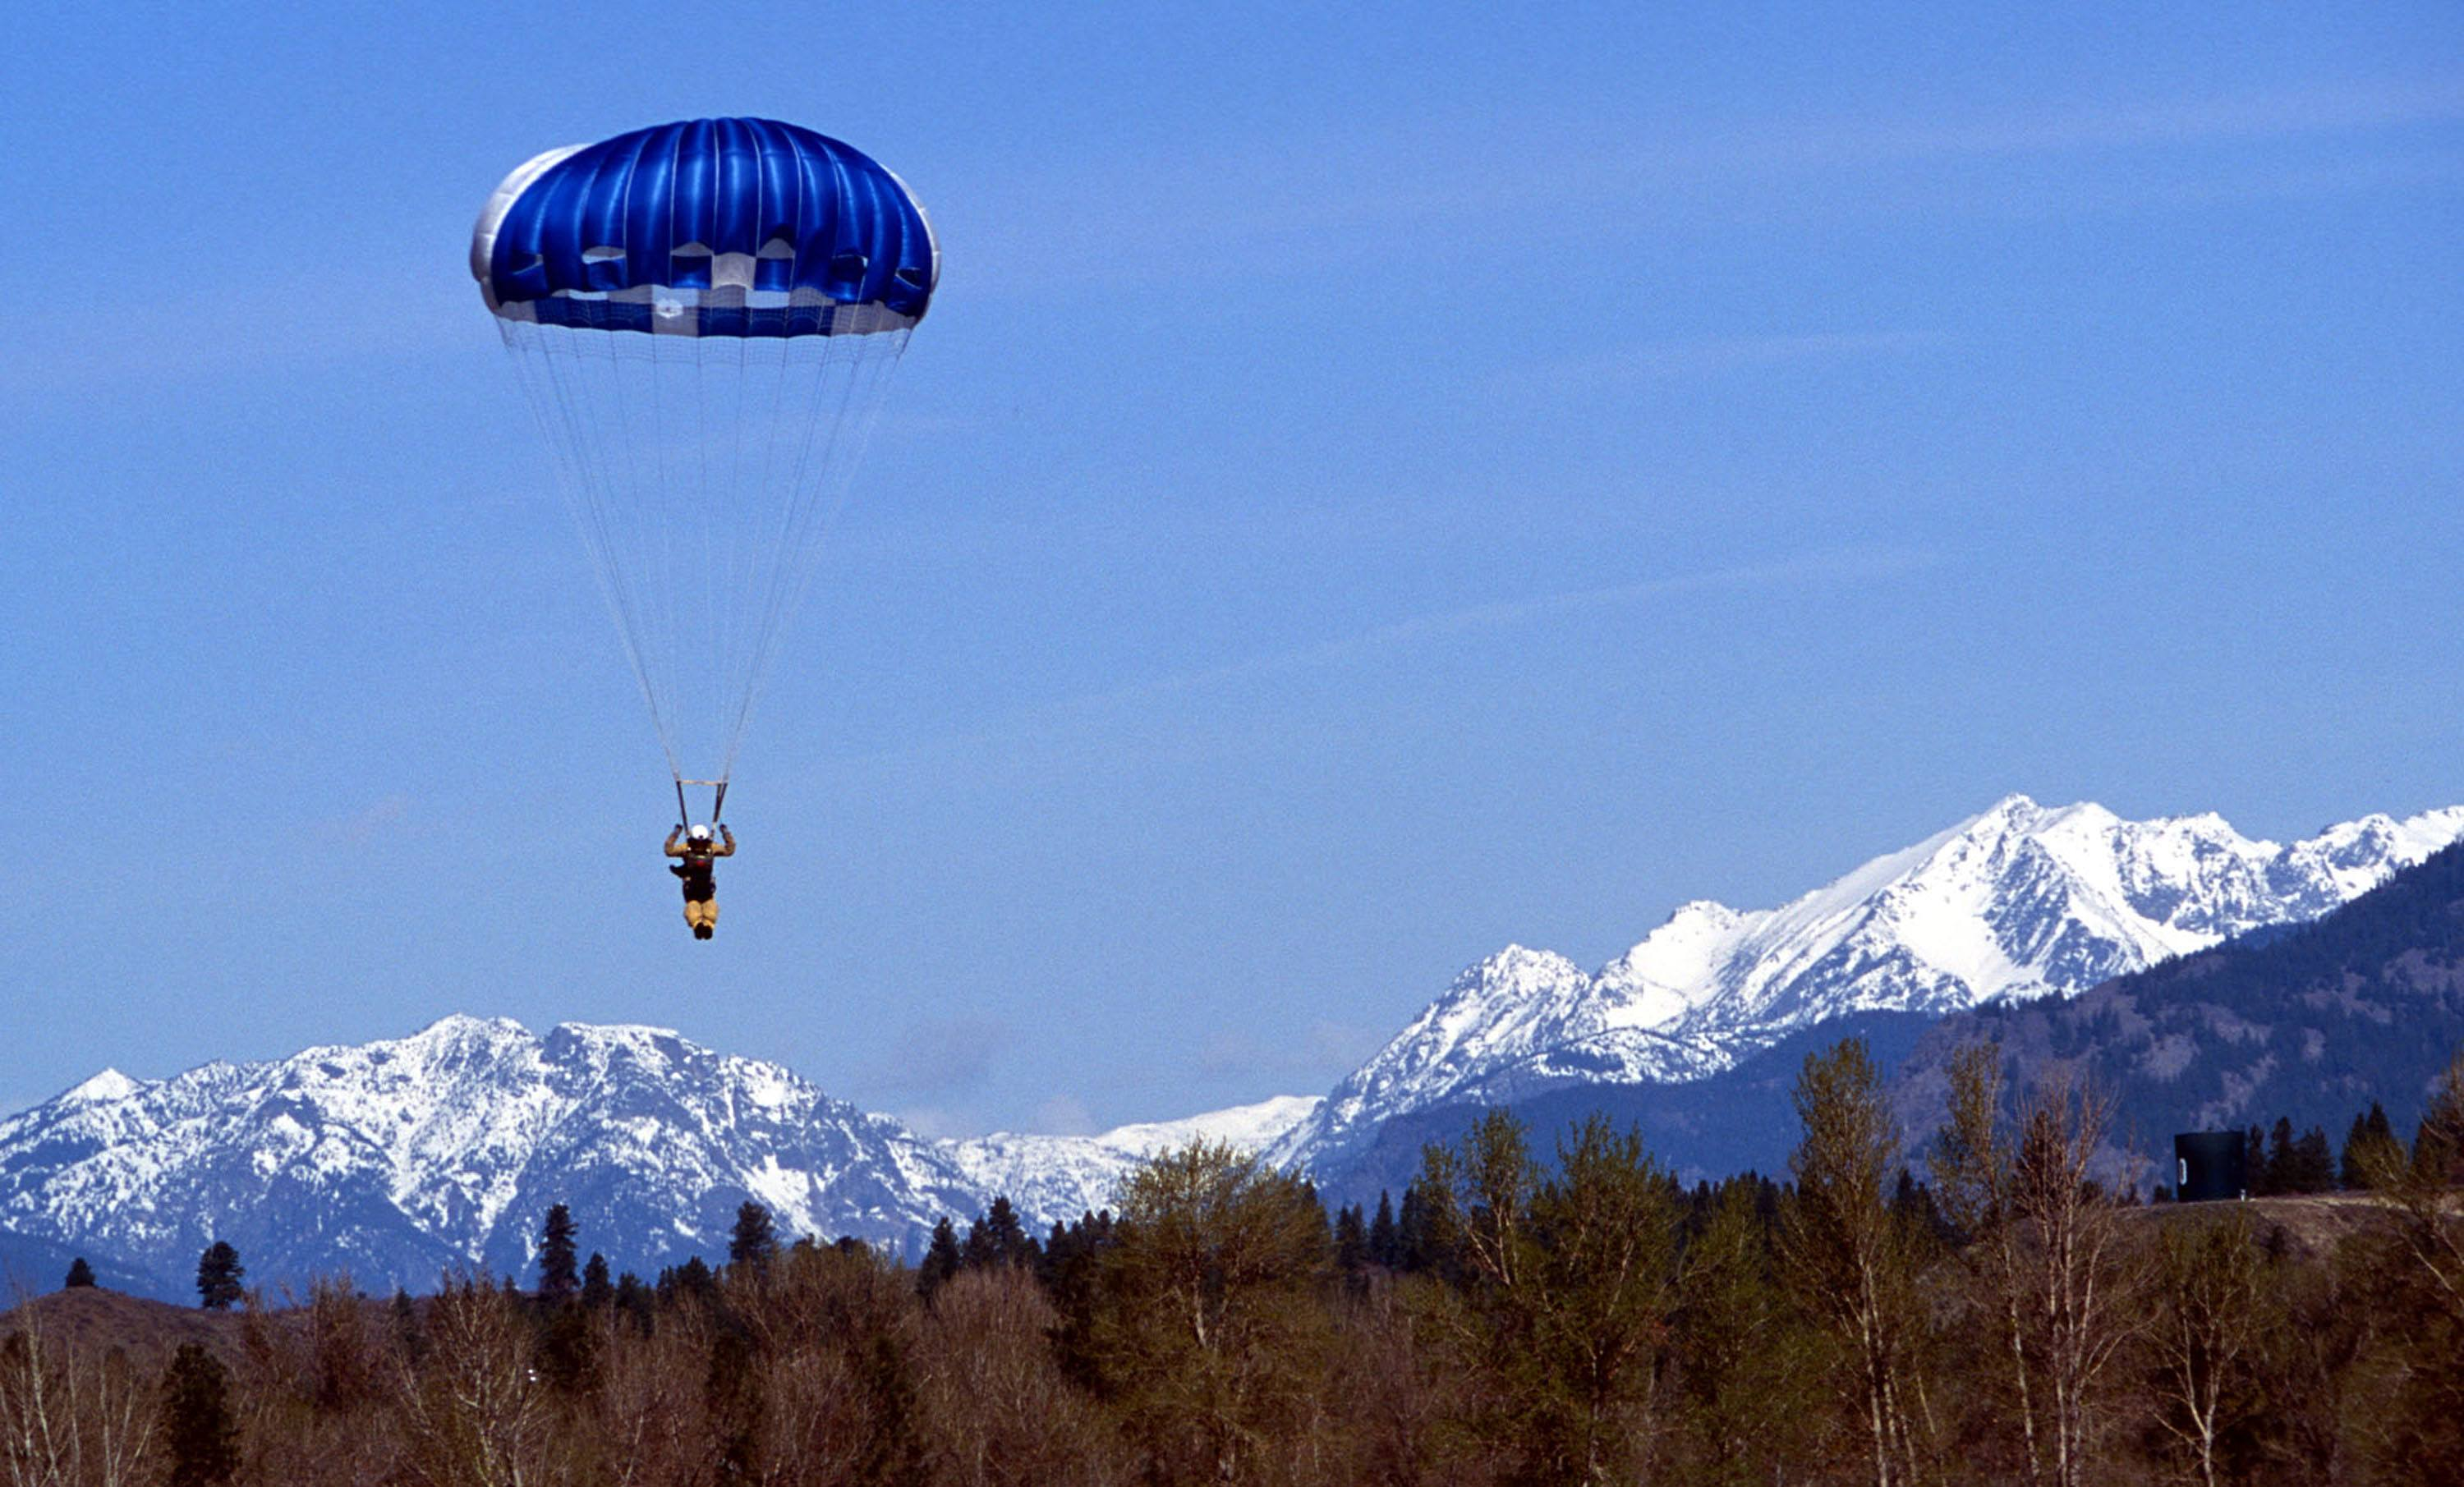 A smokejumper prepares to land at the airfield at the North Cascades Smokejumper Base in Washington